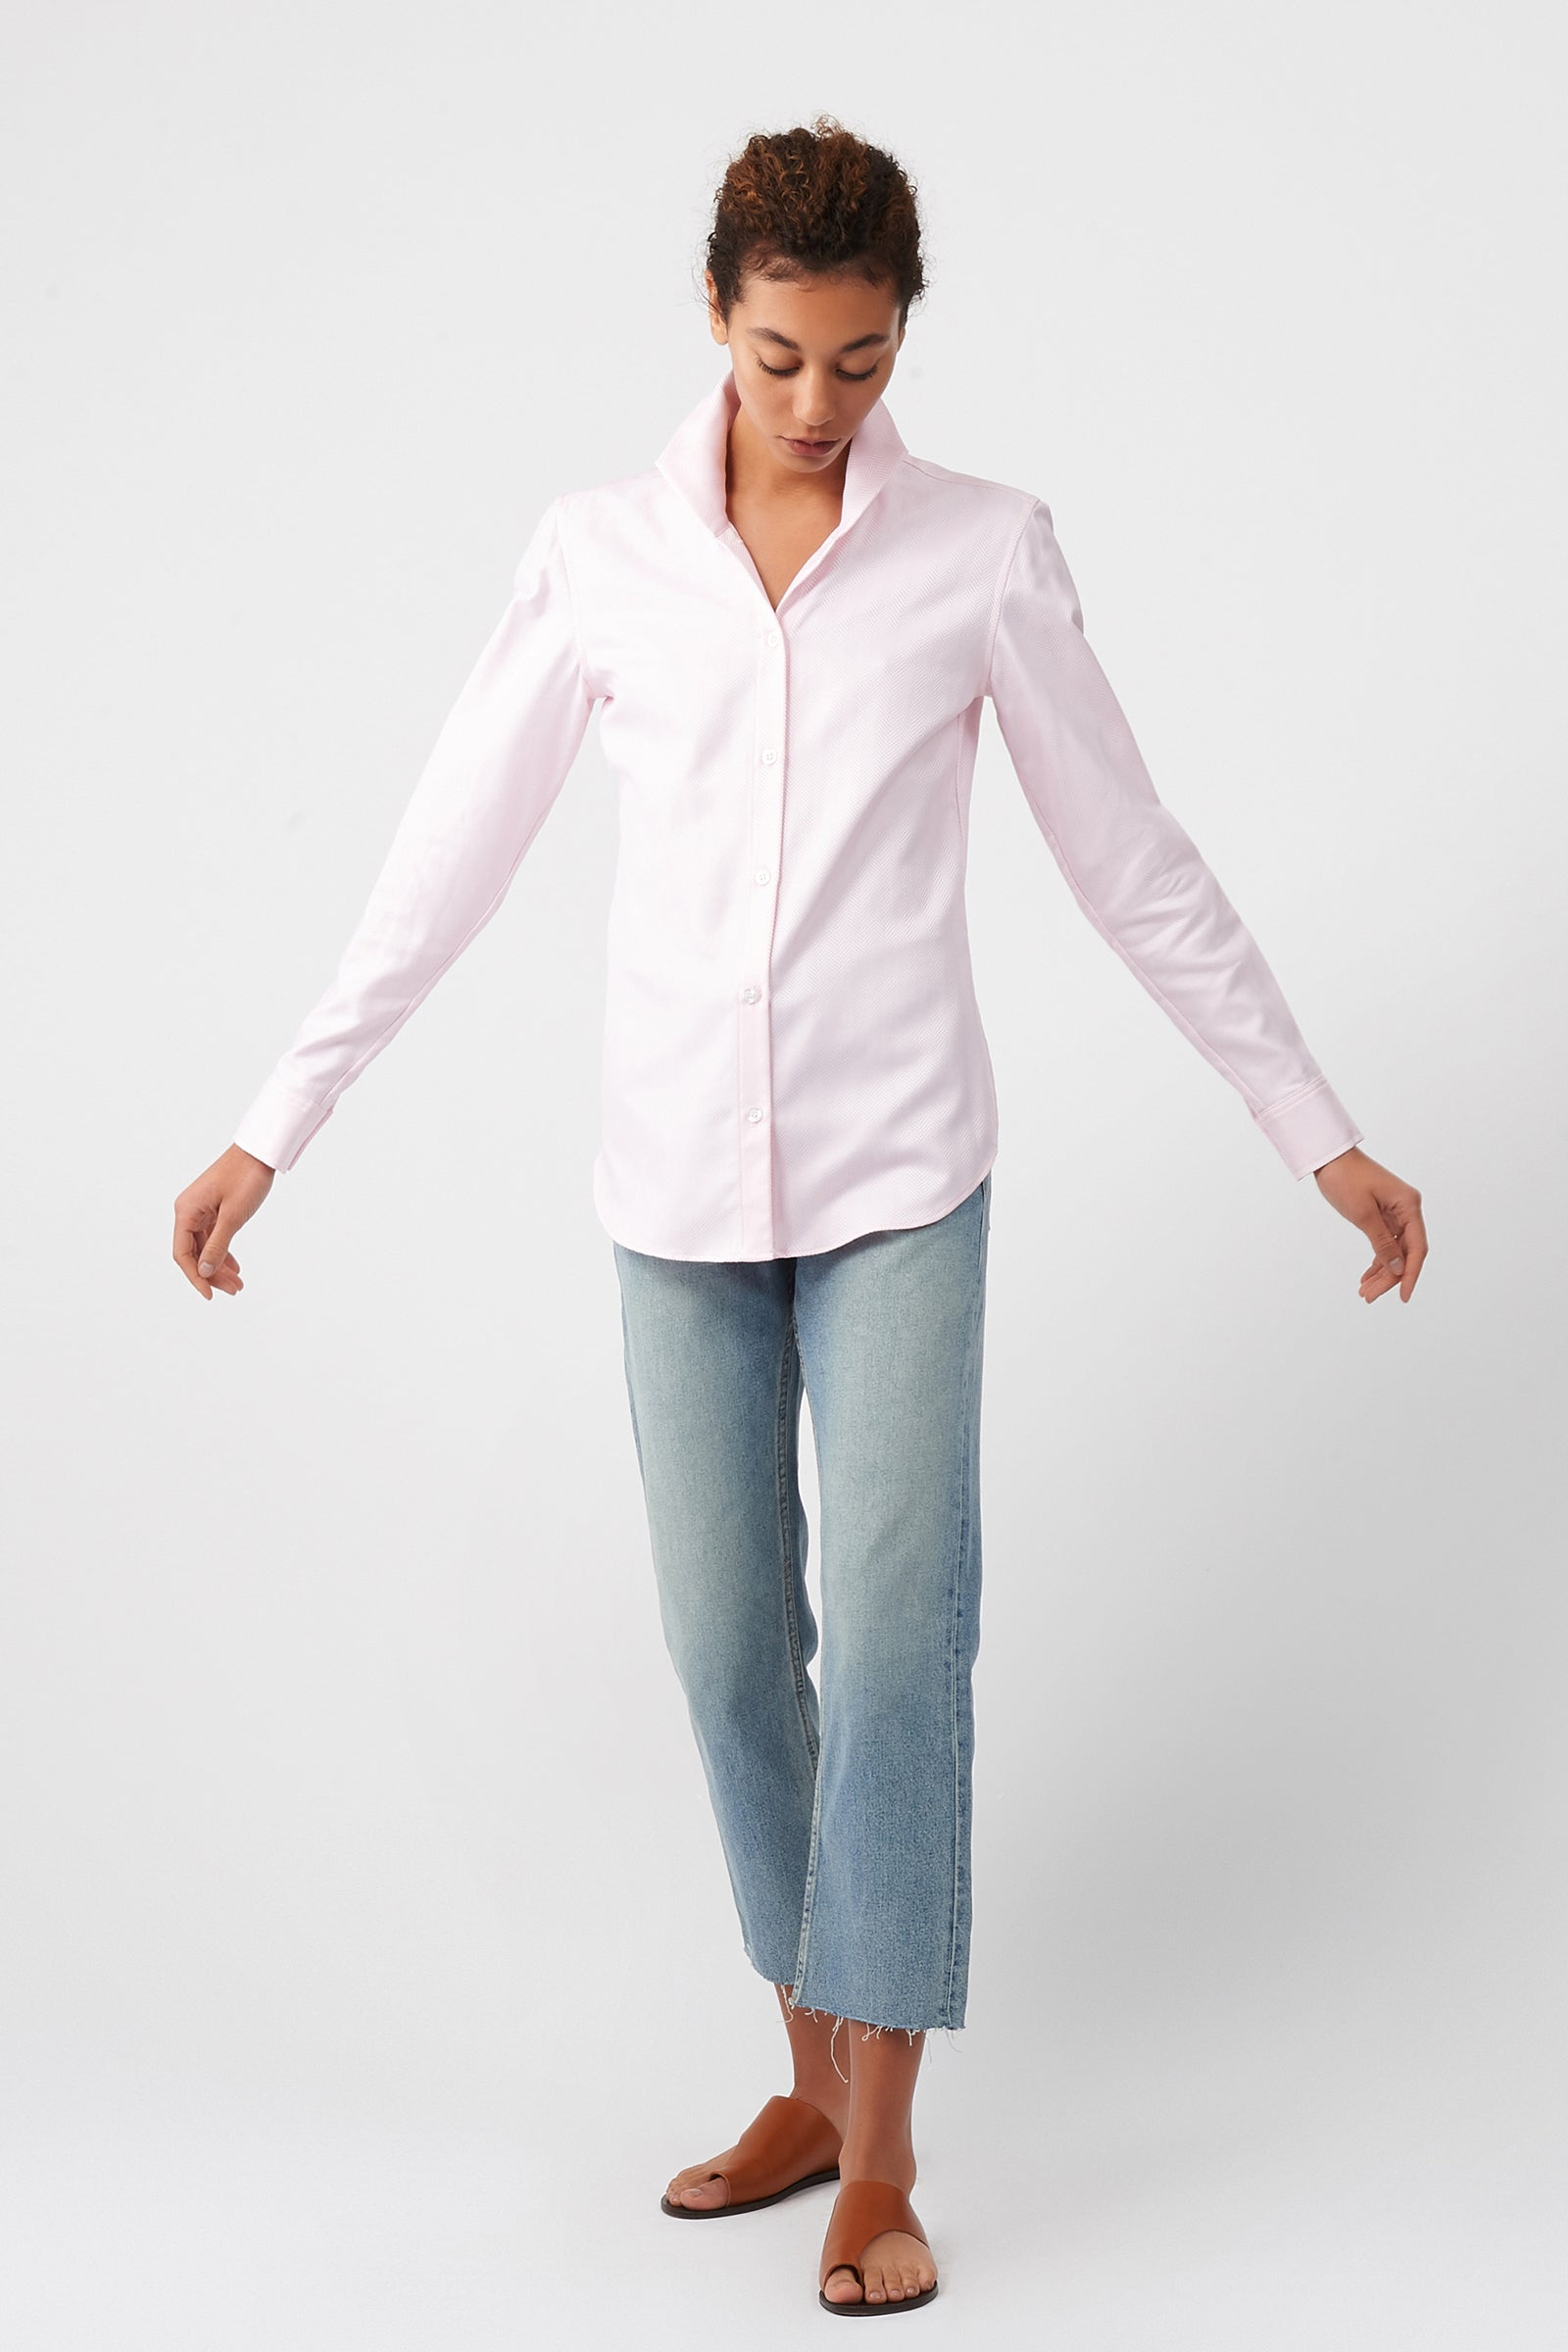 Kal Rieman Ginna Box Pleat Shirt in Pink Herringbone on Model Full Front View